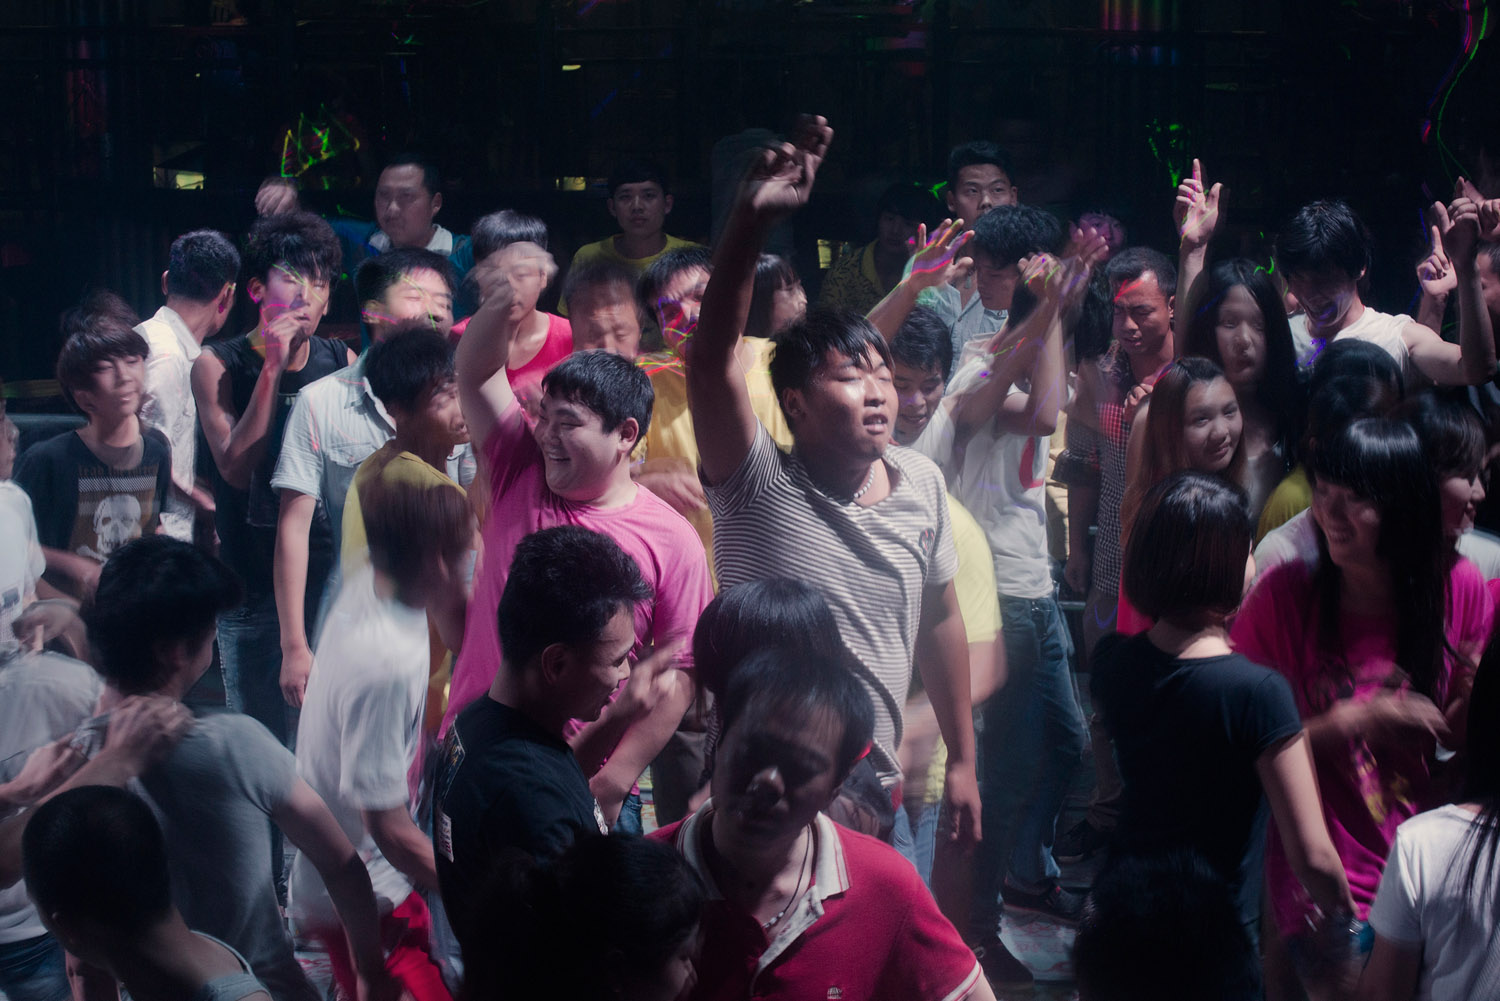 Foxconn workers at a club